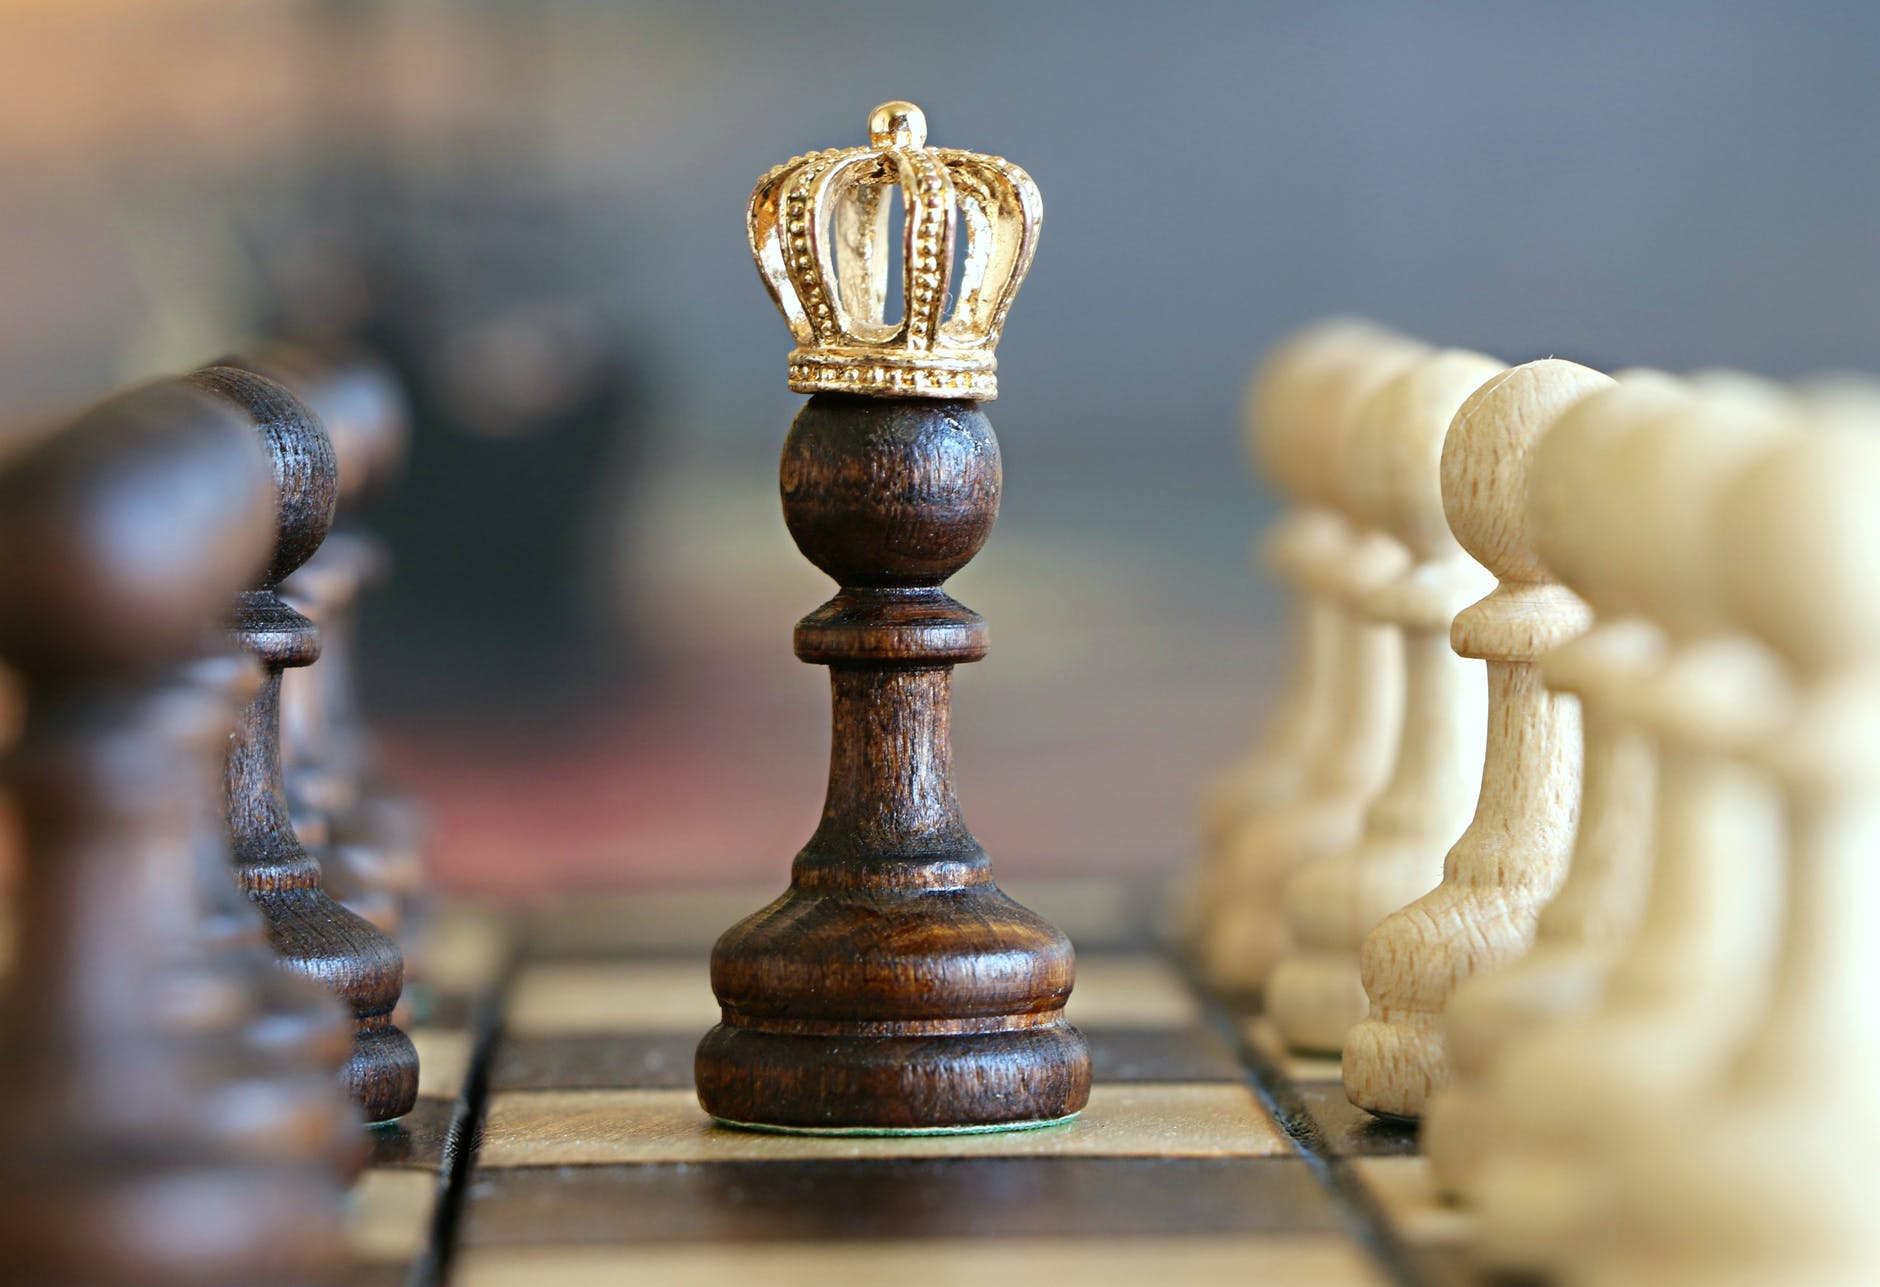 pawn with a crown